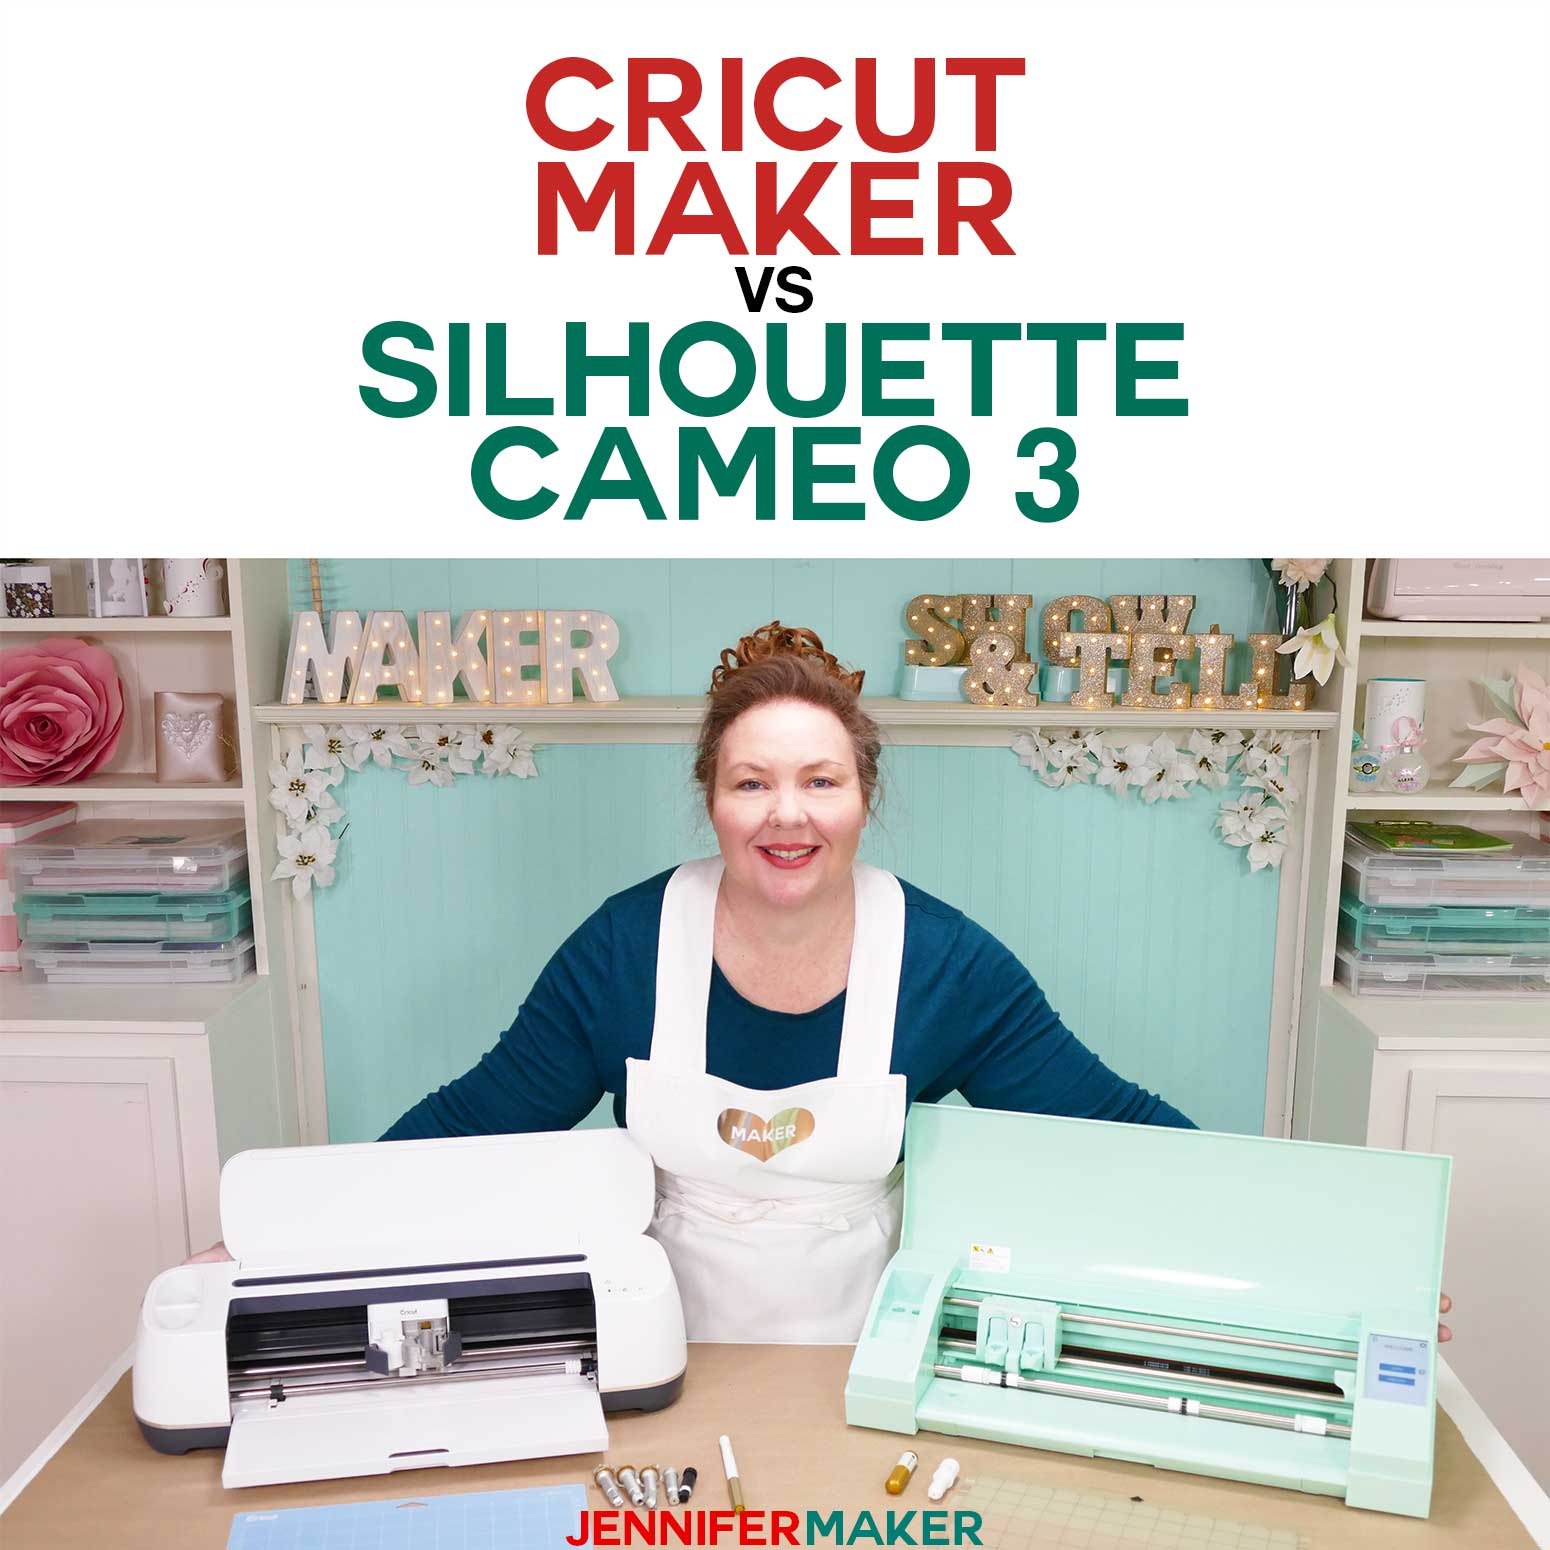 Compare the Cricut Maker vs Silhouette Cameo 3 in this head-to-head showdown between the two top-of-the-line cutting machines #cricutmaker #silhouettecameo